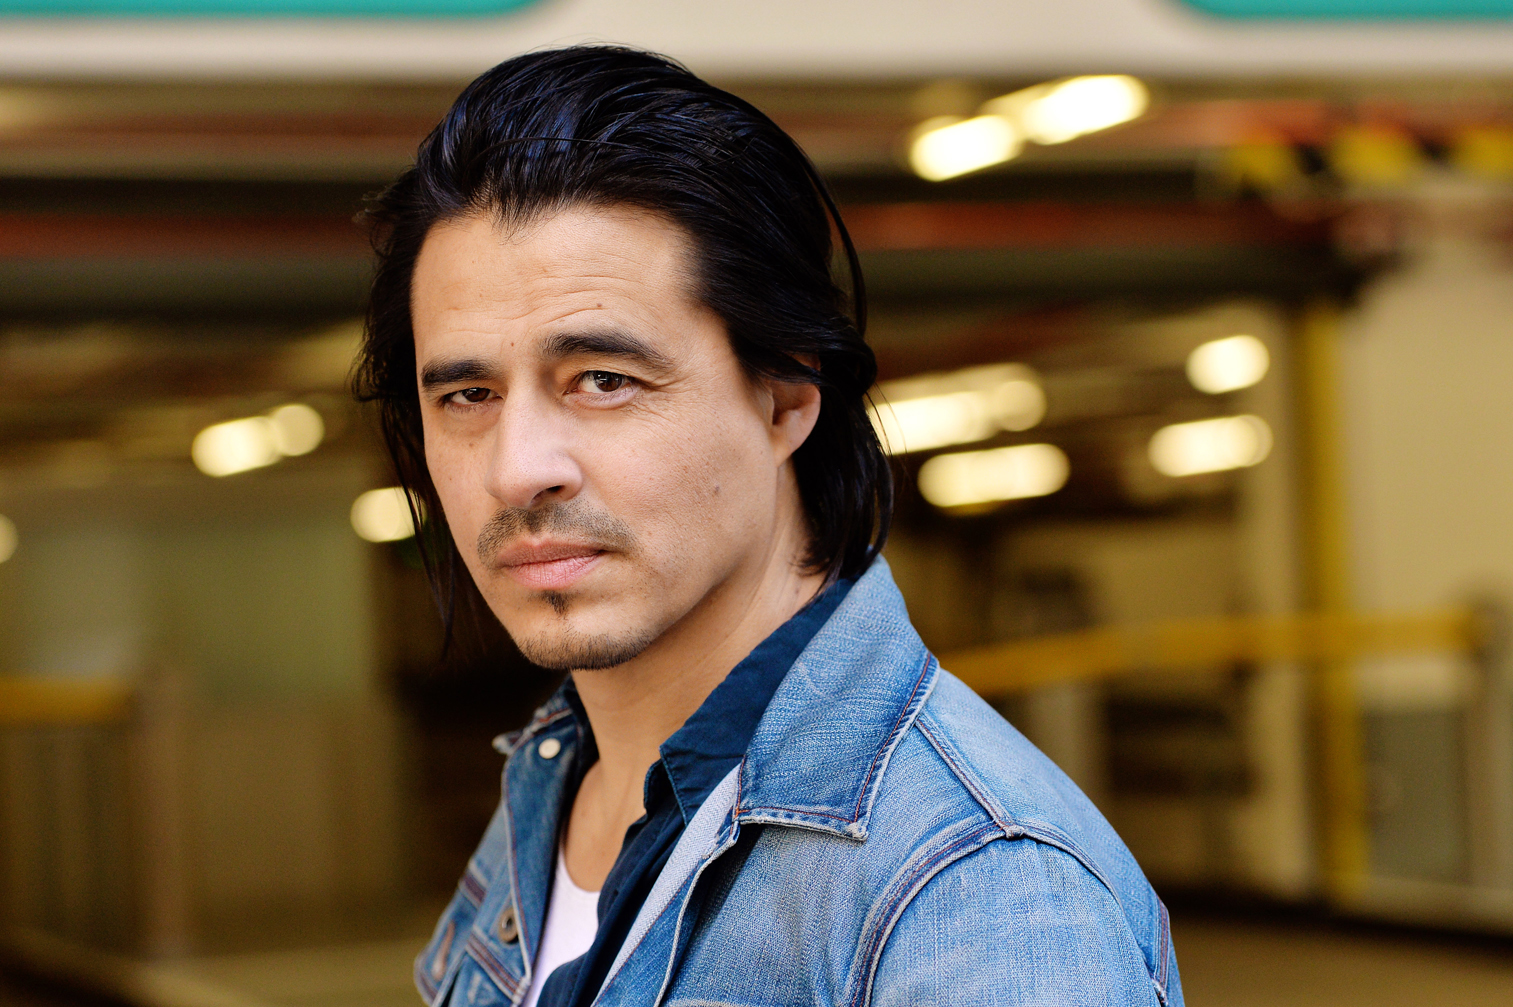 Antonio Jaramillo/By B.Kommerell